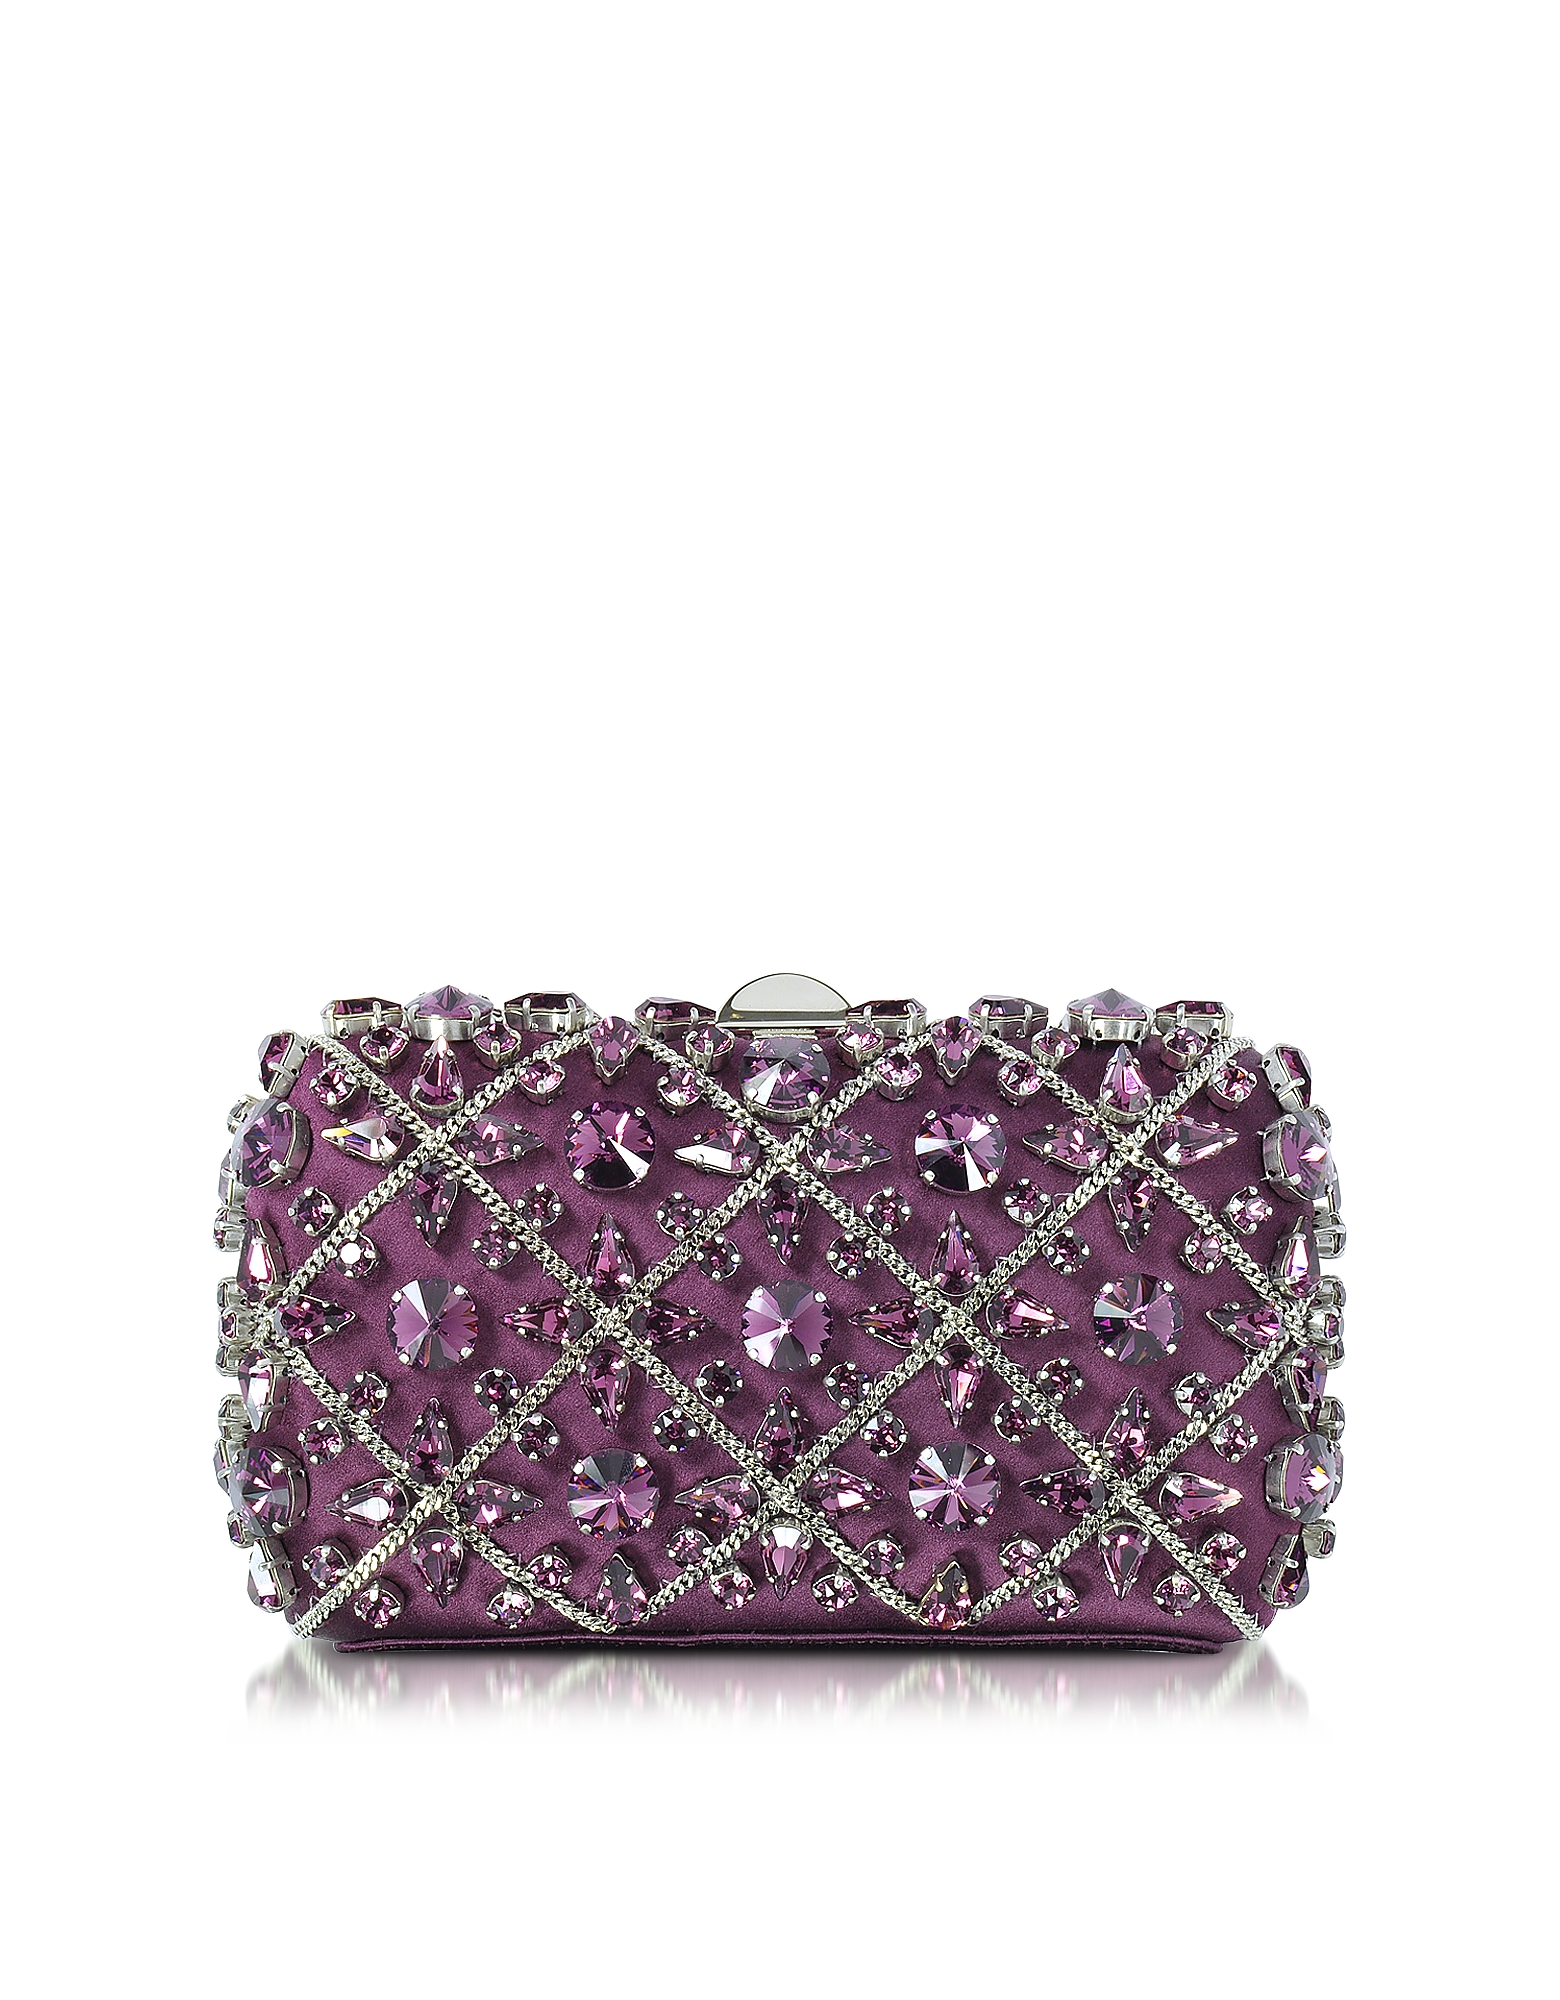 Rodo Handbags, Purple Silk Tresor Clutch w/Crystals